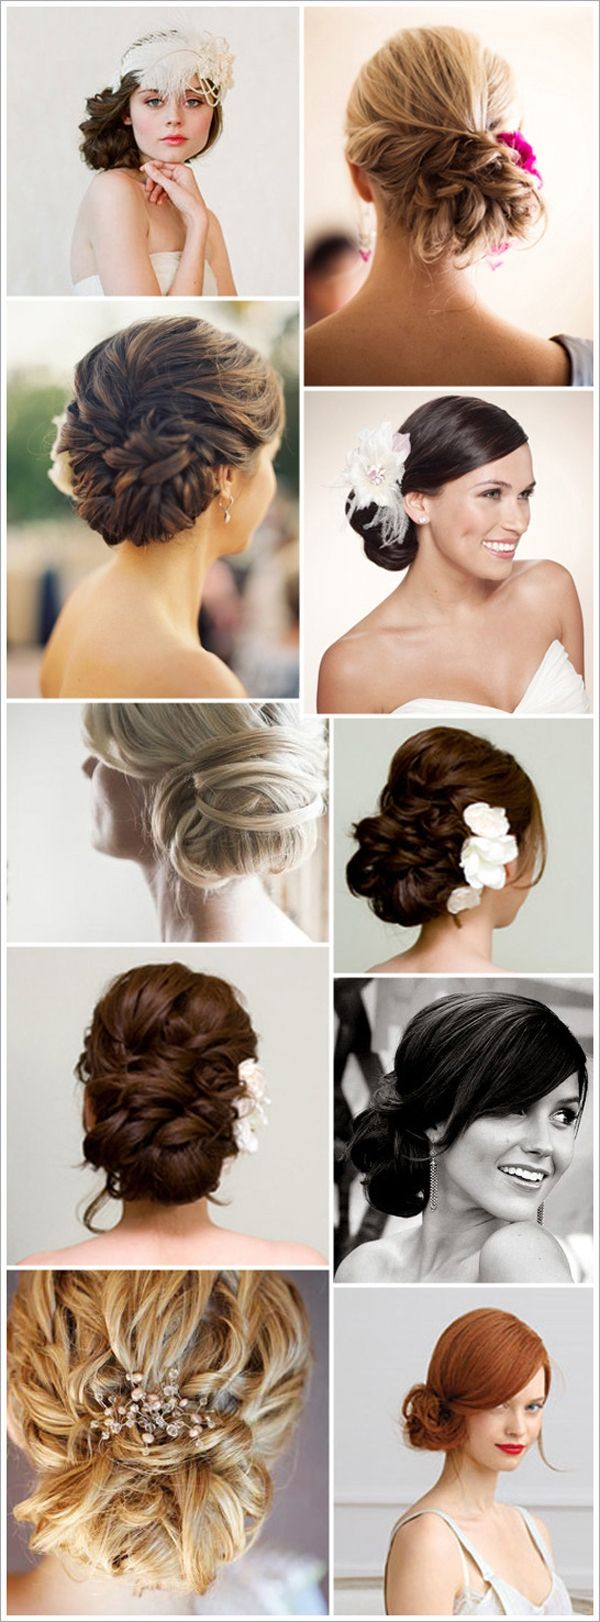 @Michelle Hendrick, I really like some of these. I think you would look good with a low, textured bun pulled a bit to the side so you can see it from the front